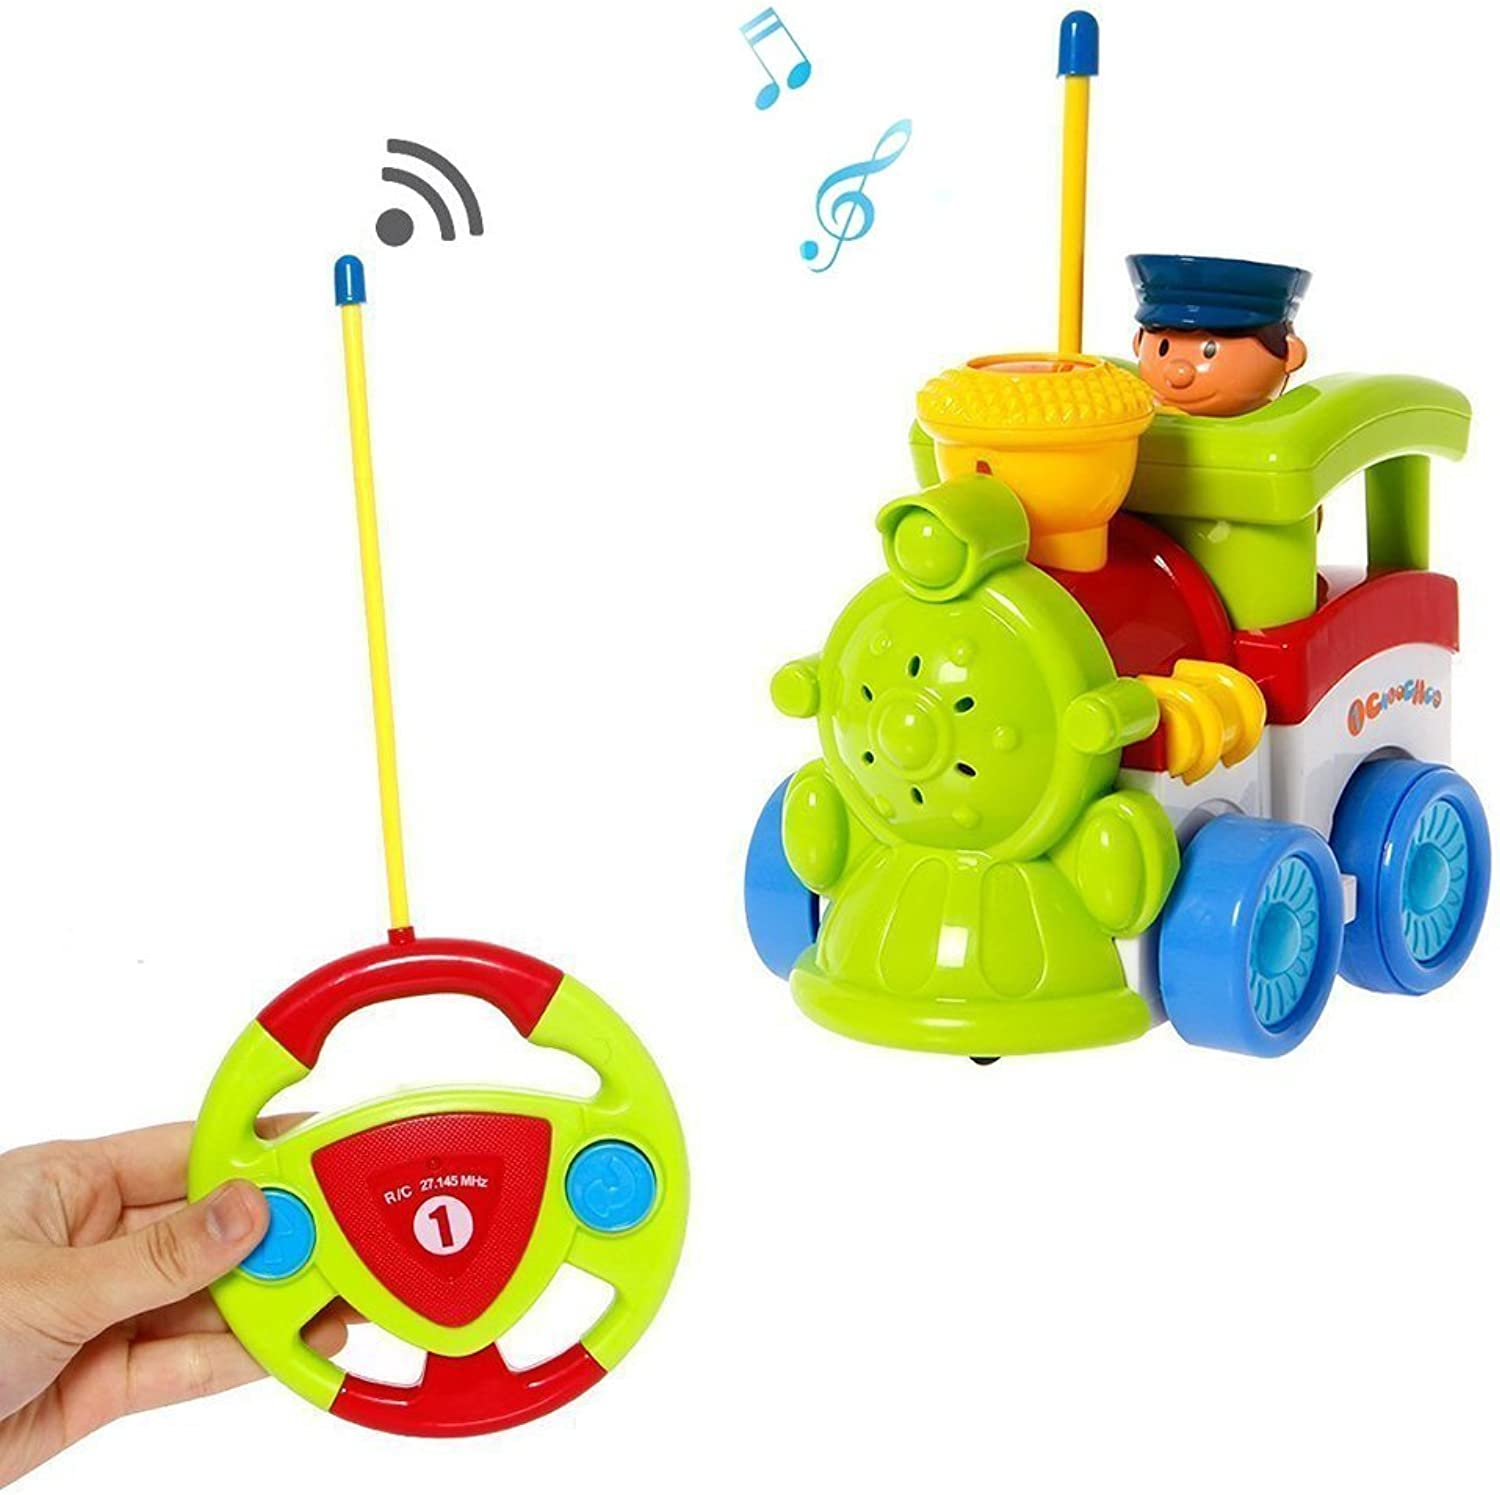 Cartoon R C Train Car Radio Control Toy for Toddlers (Assorted colors)